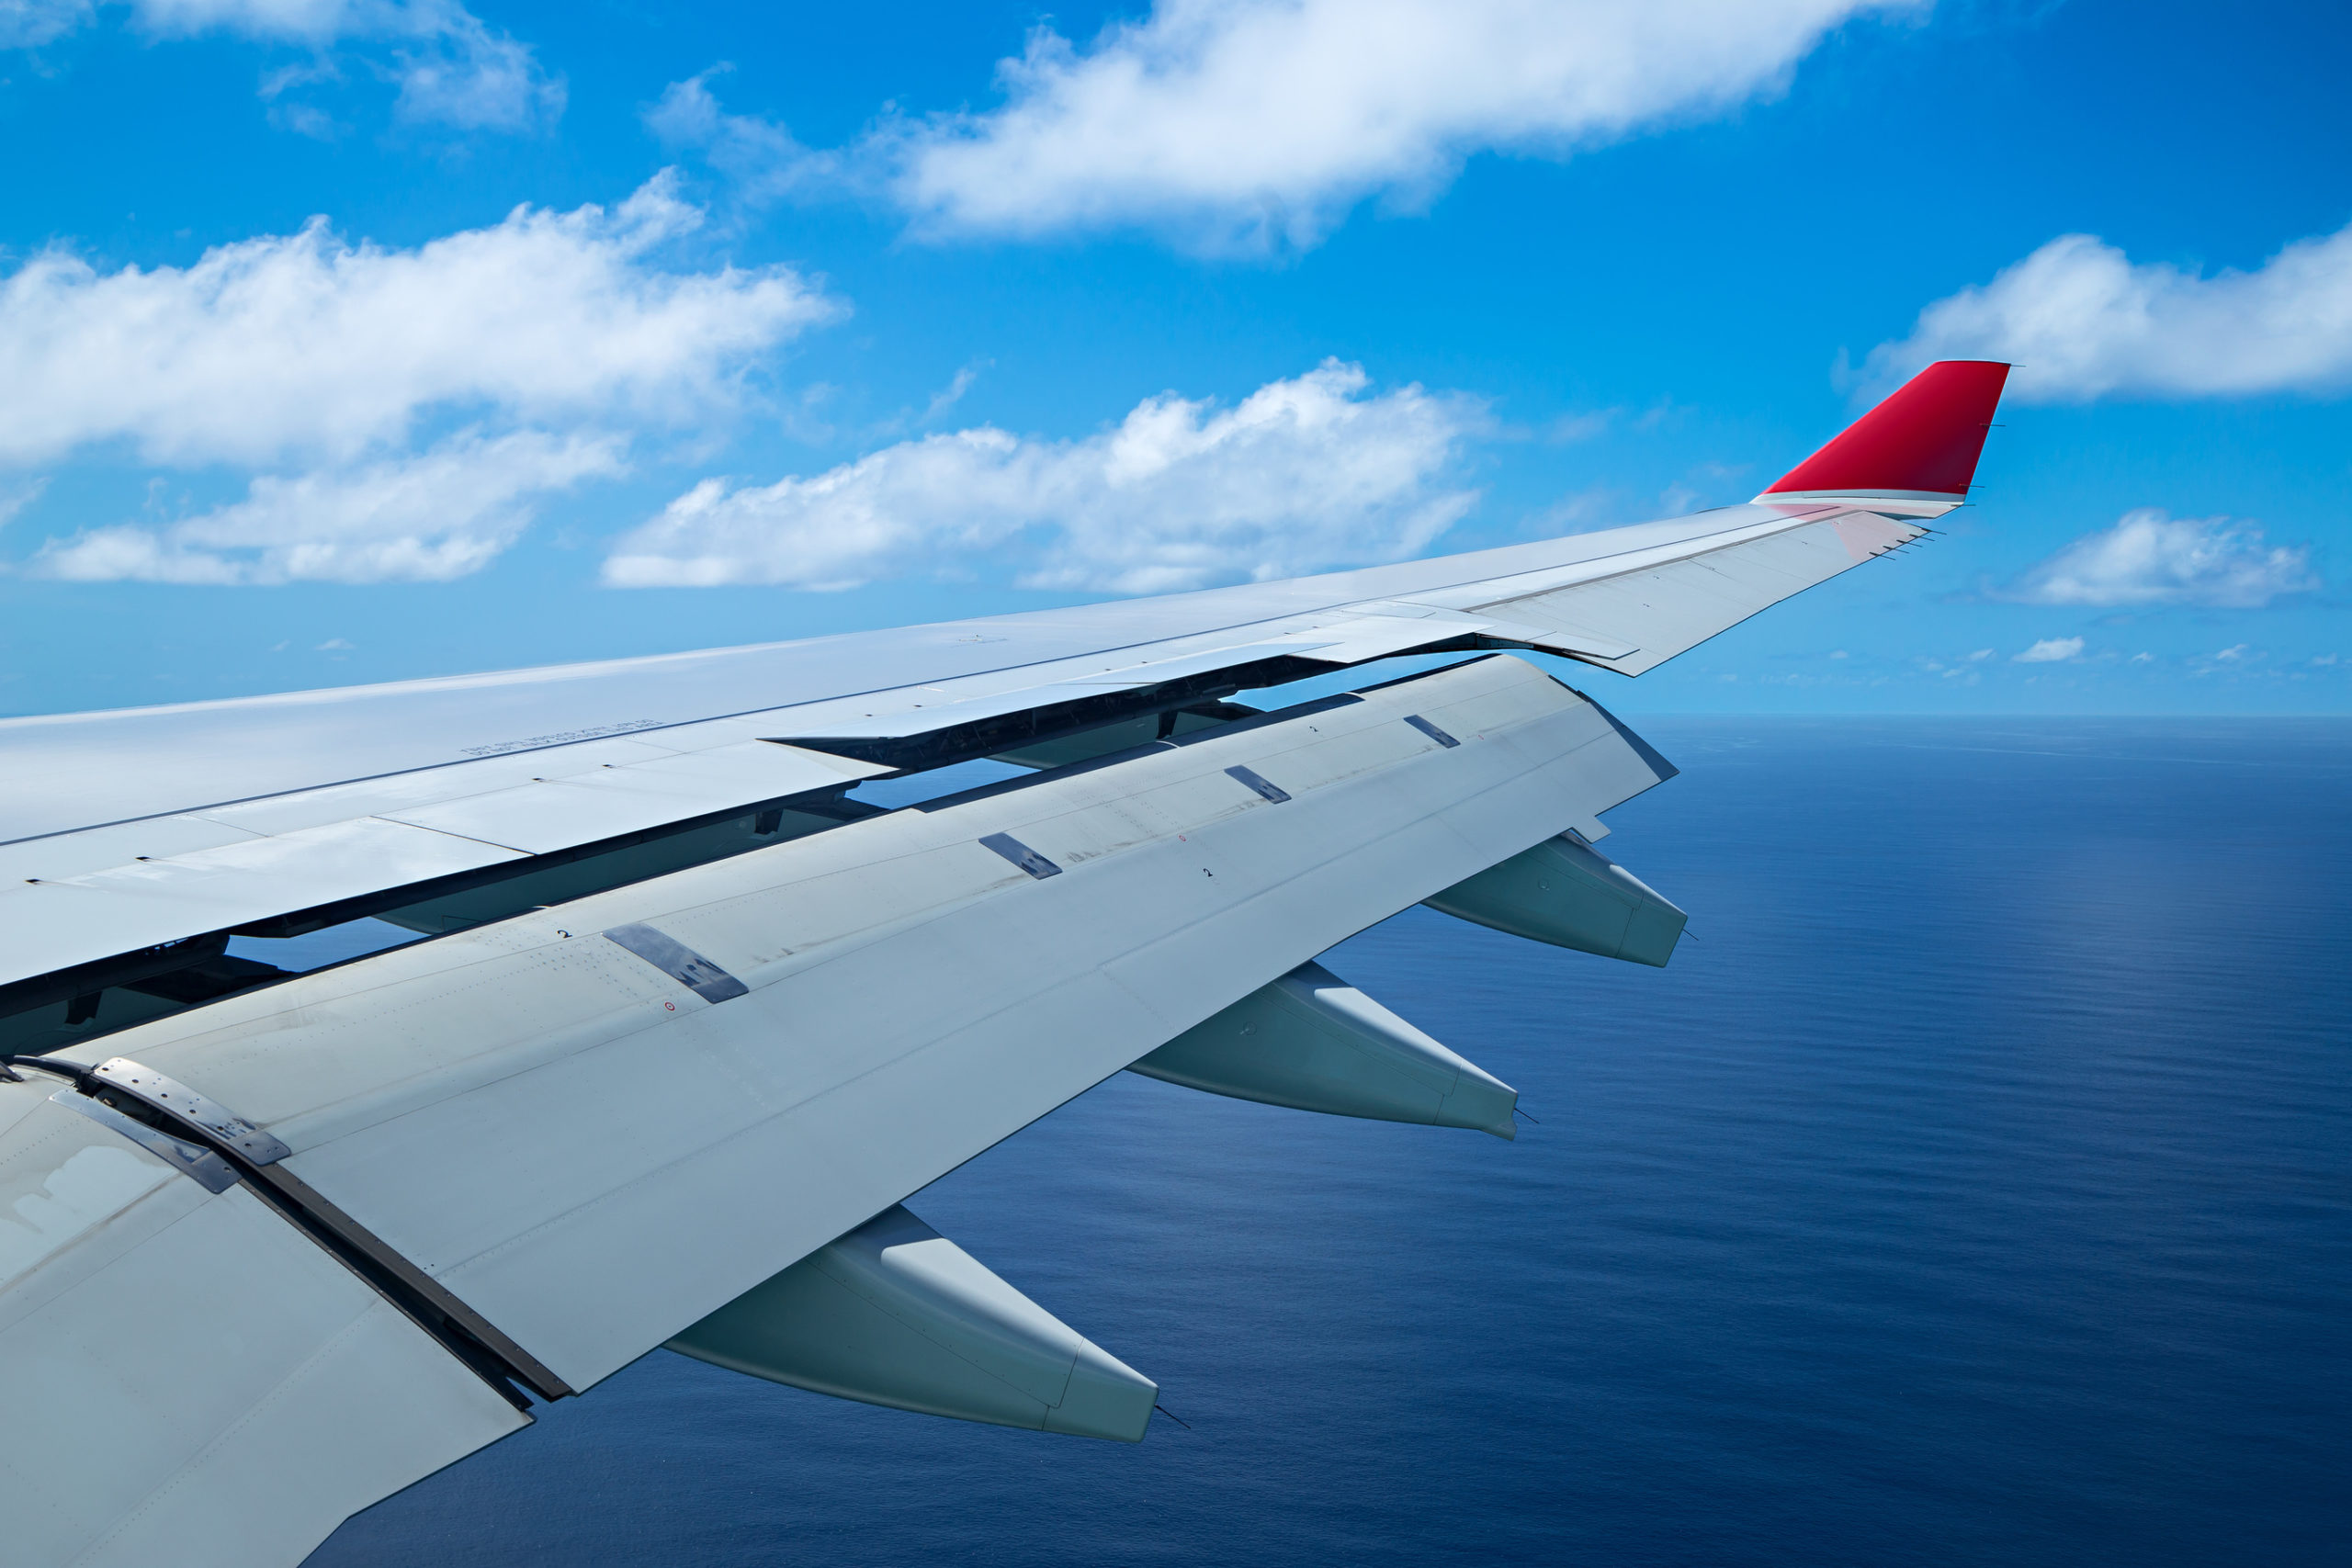 wing of an airplane aero plane with landing flaps on blue cloudy sky